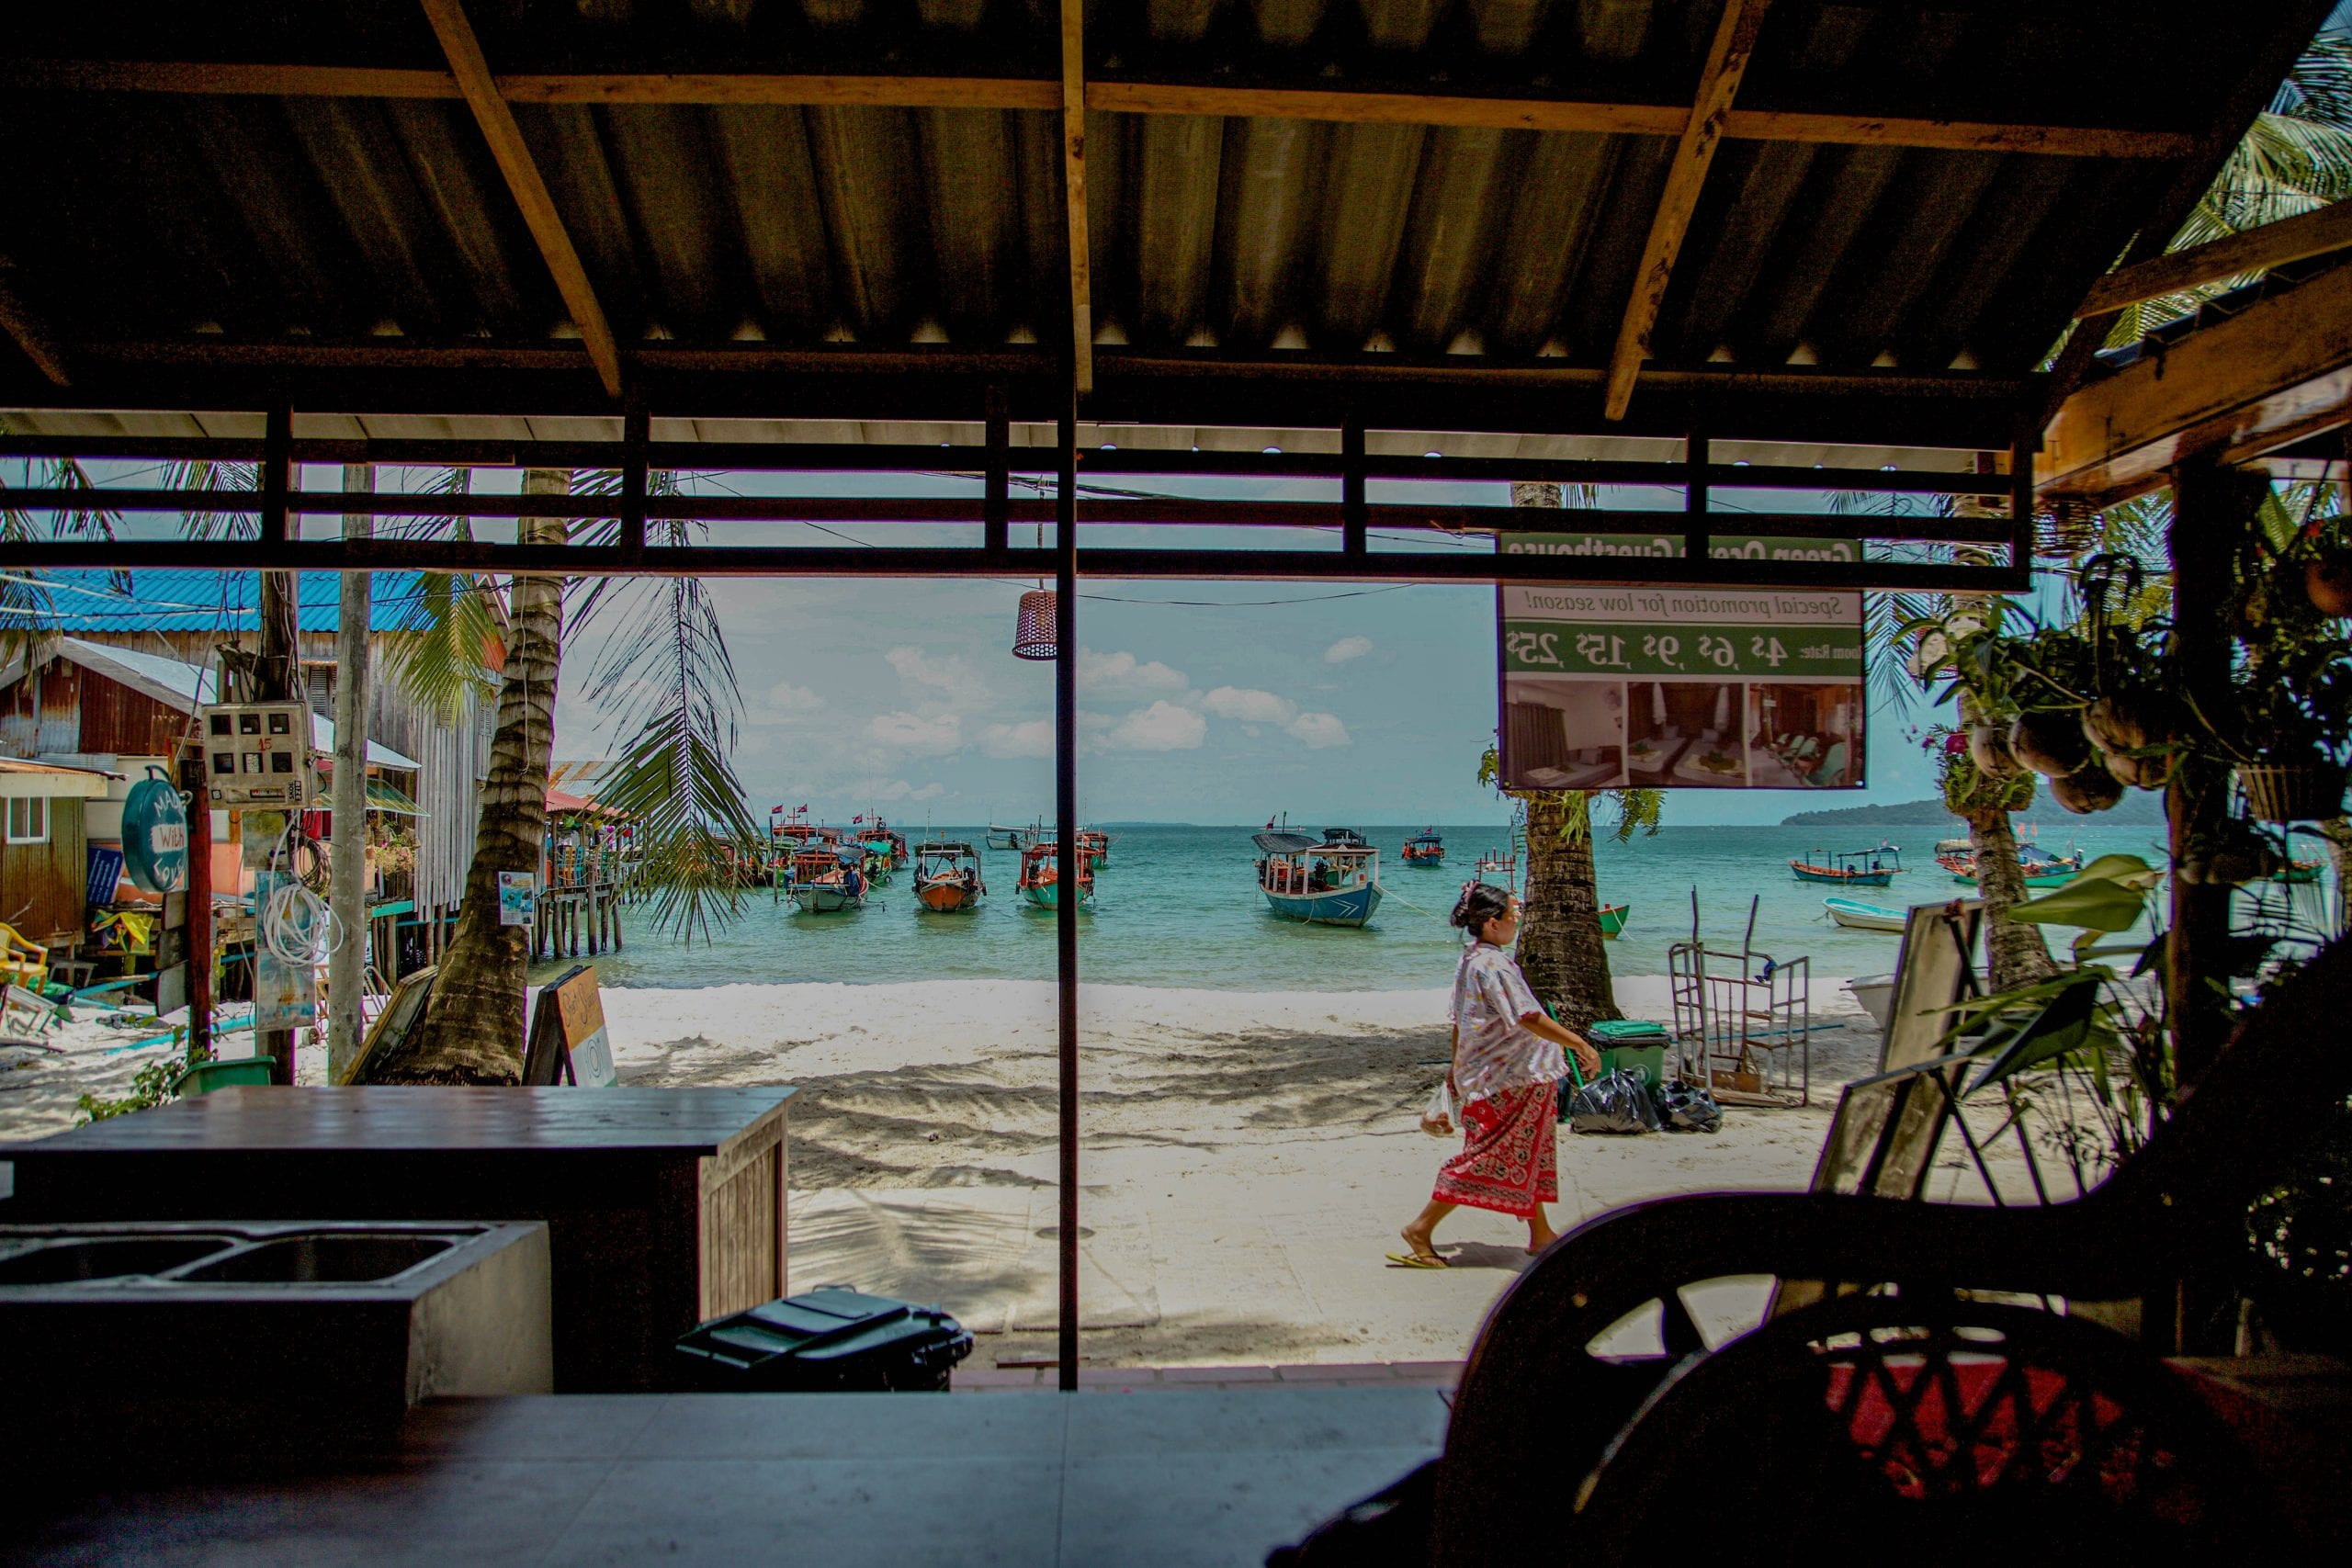 View of the beach inside a cafe on Koh Rong, Cambodia